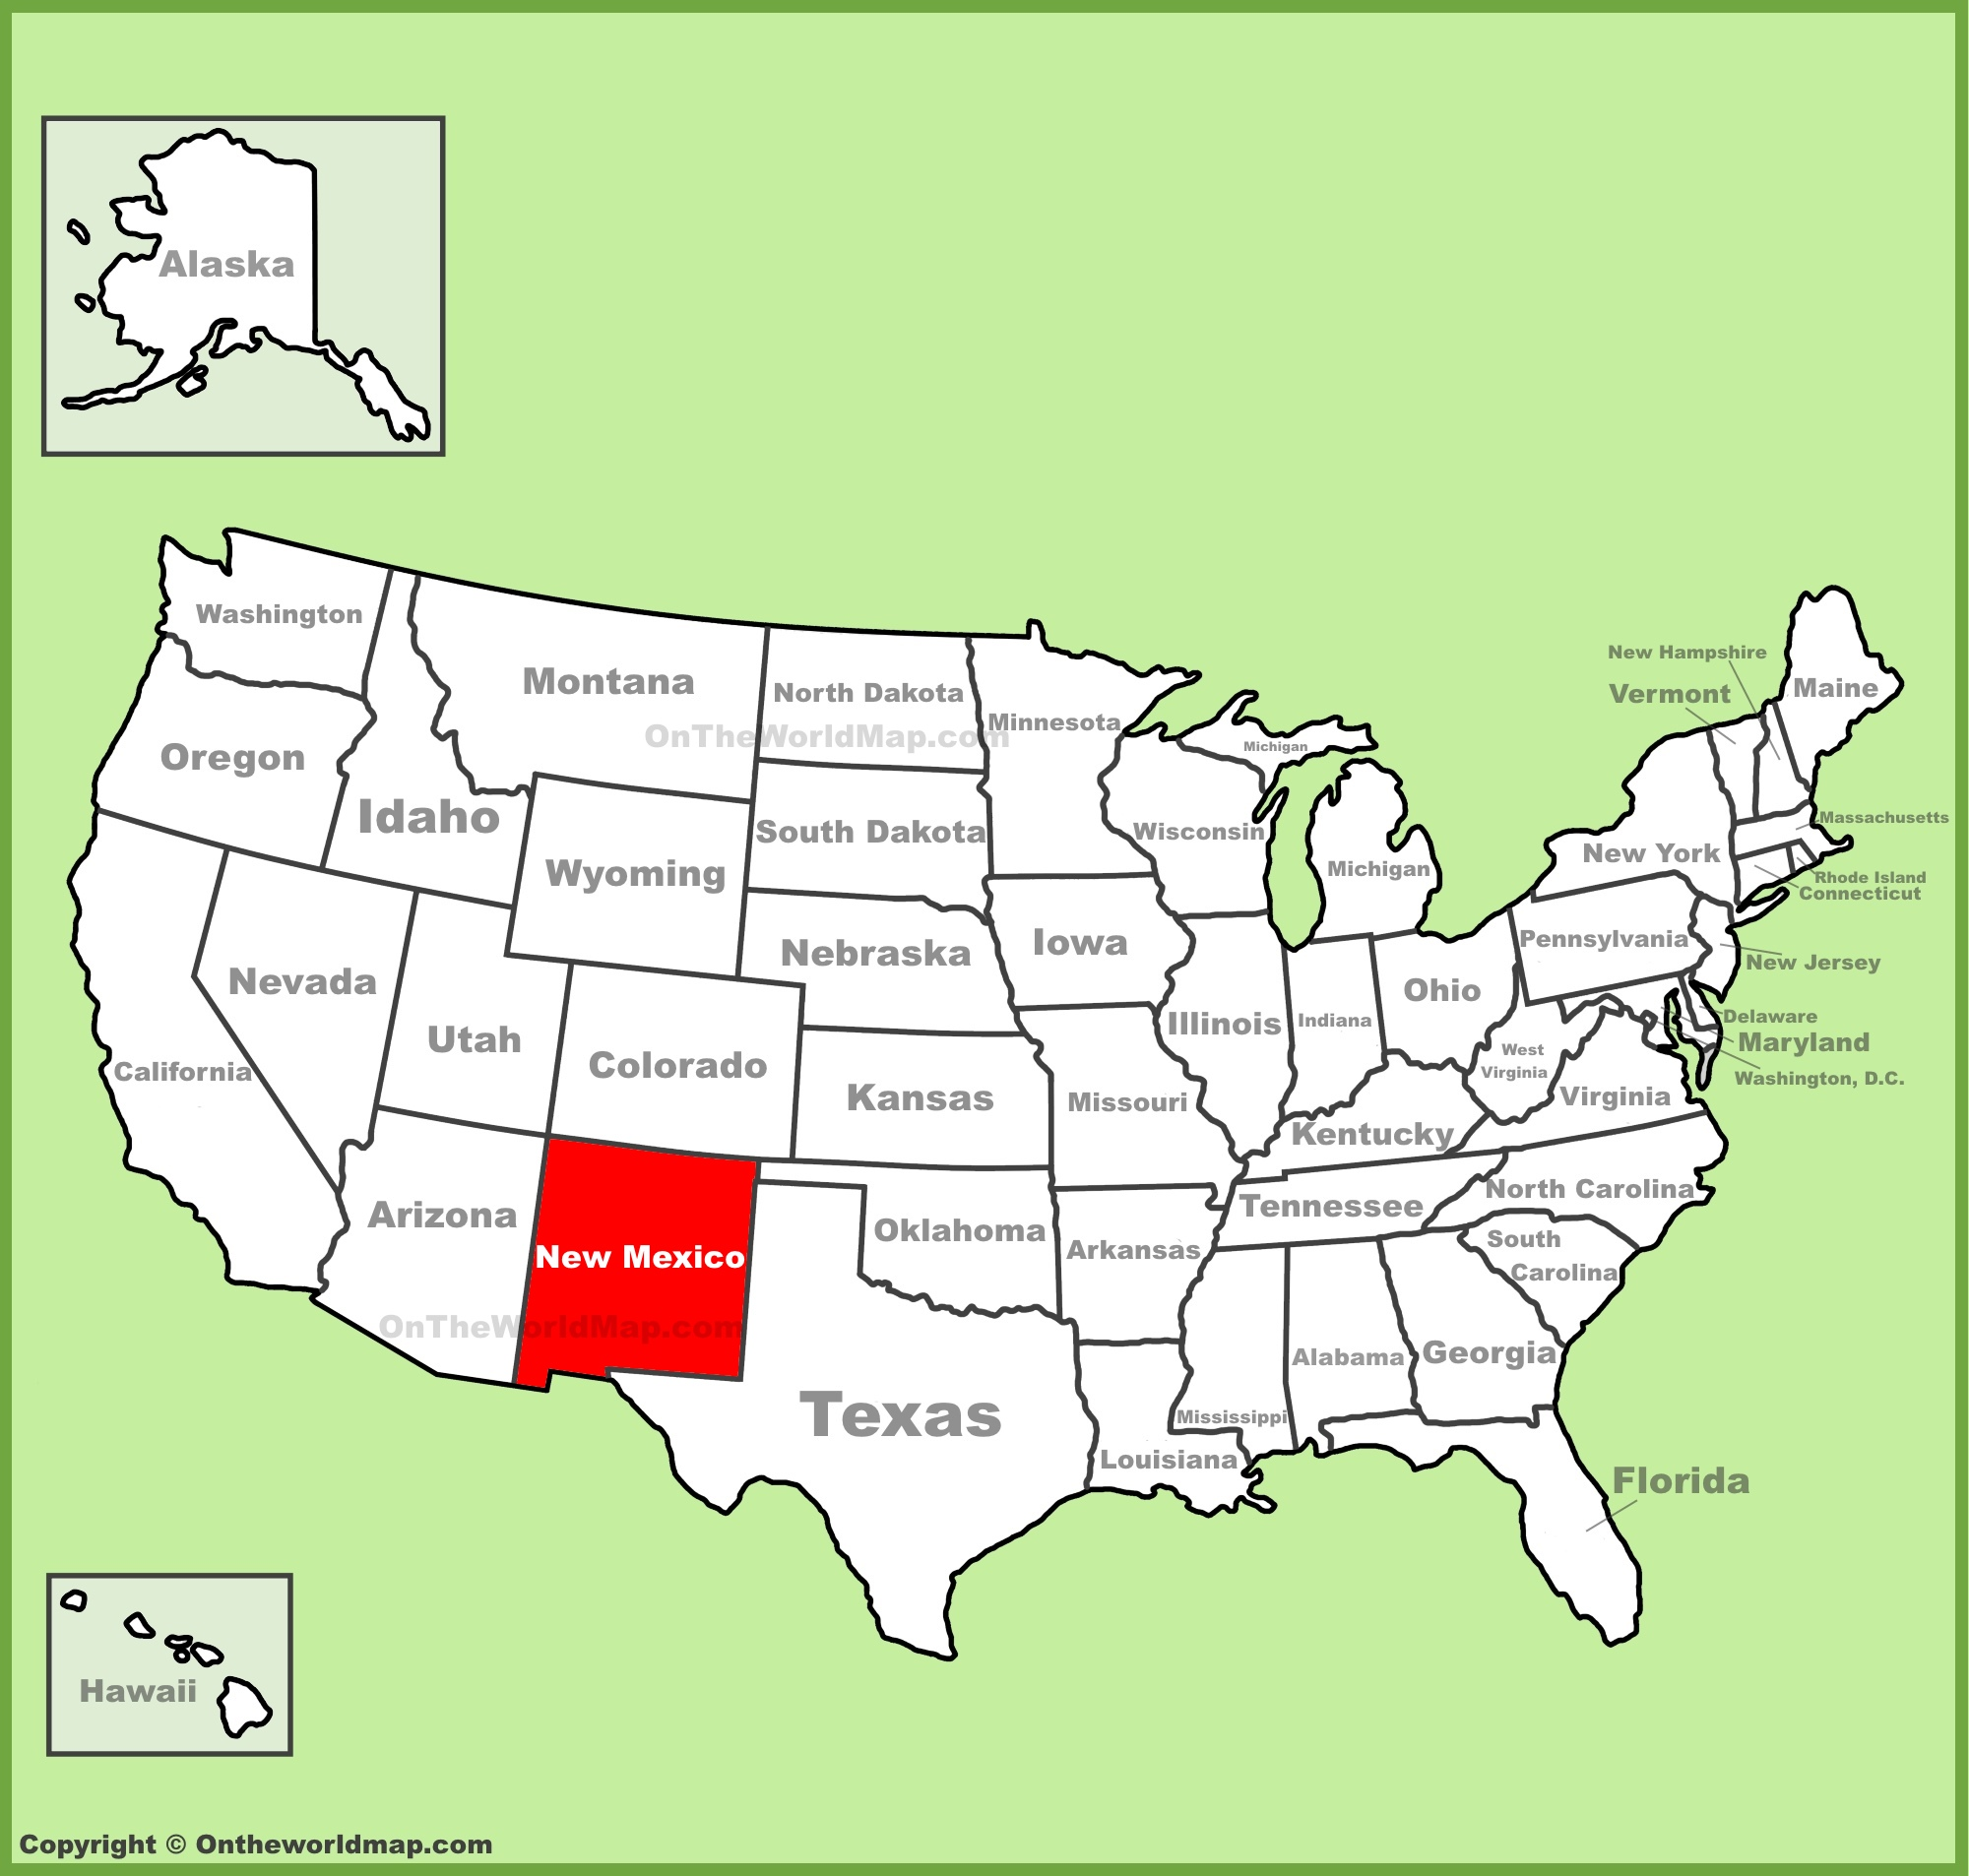 New Mexico location on the U.S. Map